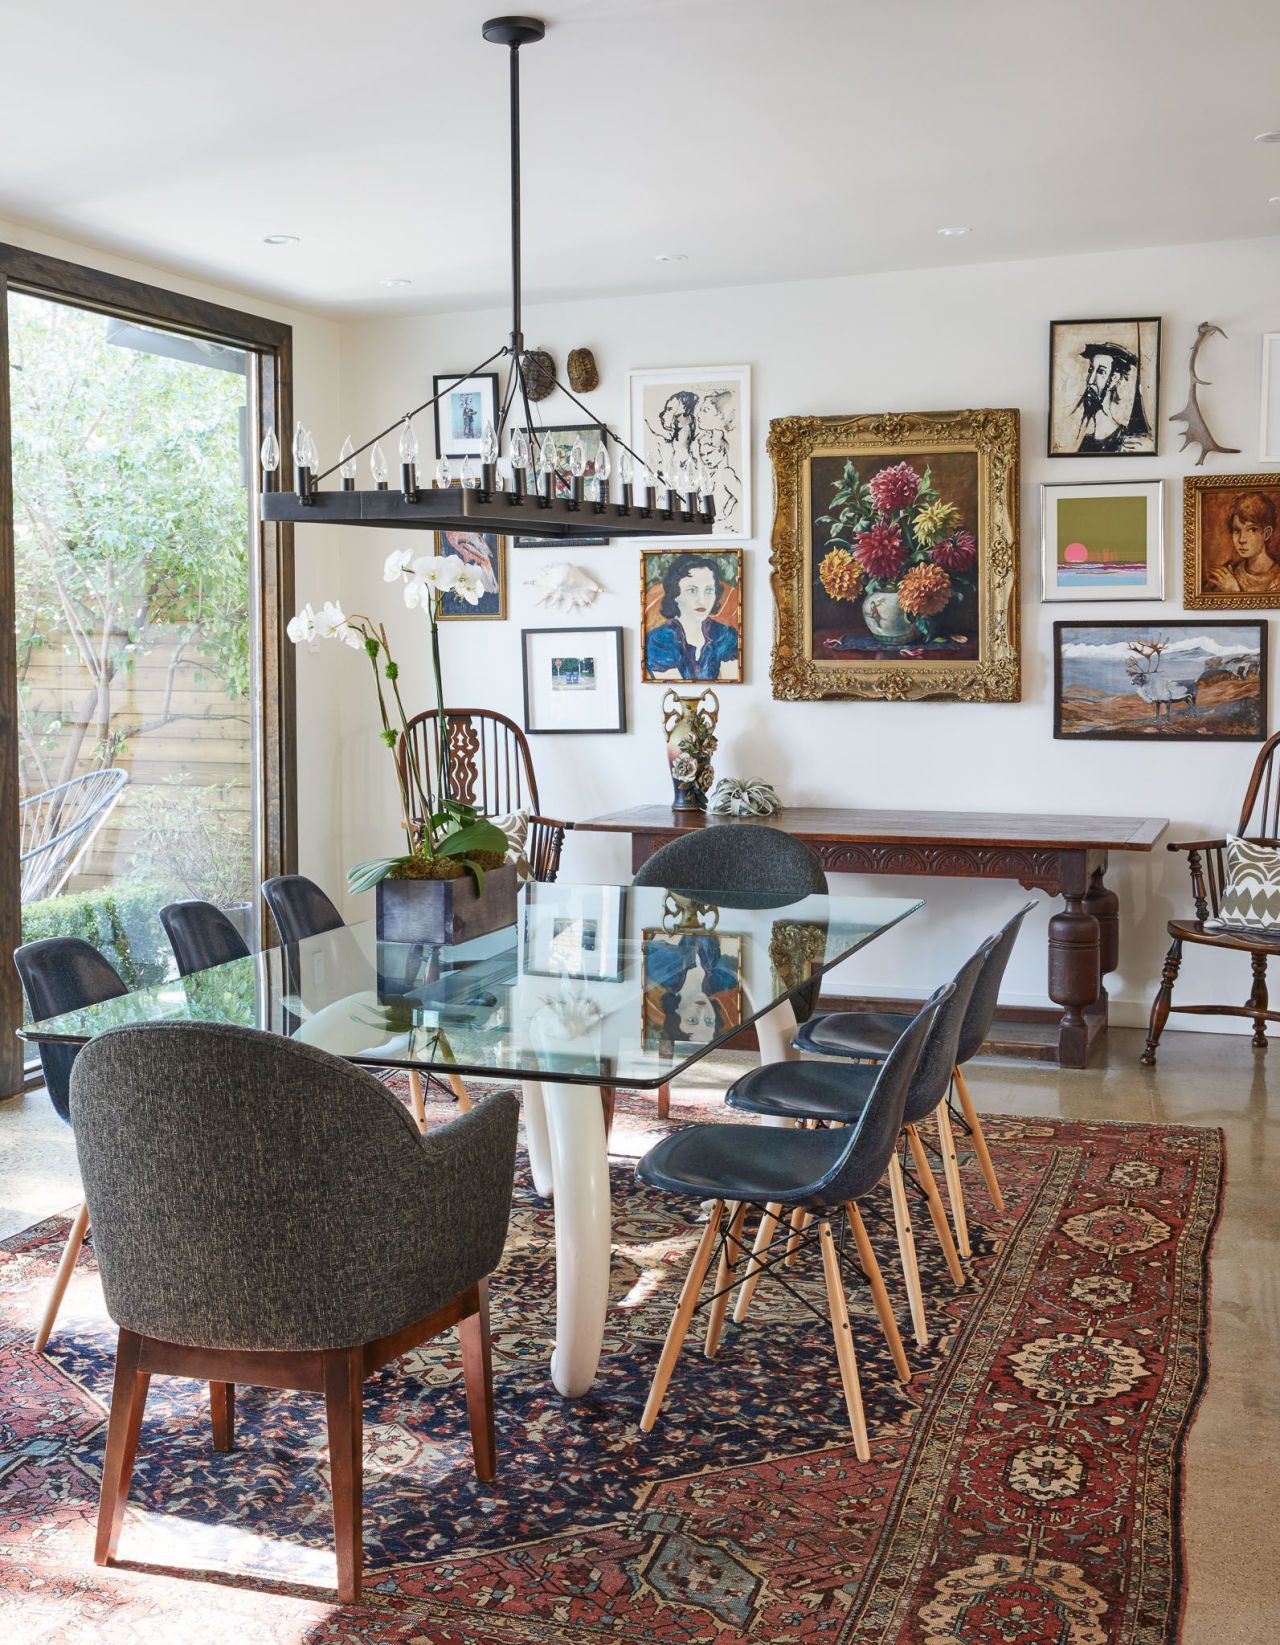 Scandinavian Design With Bohemian Style  Eclectic Style